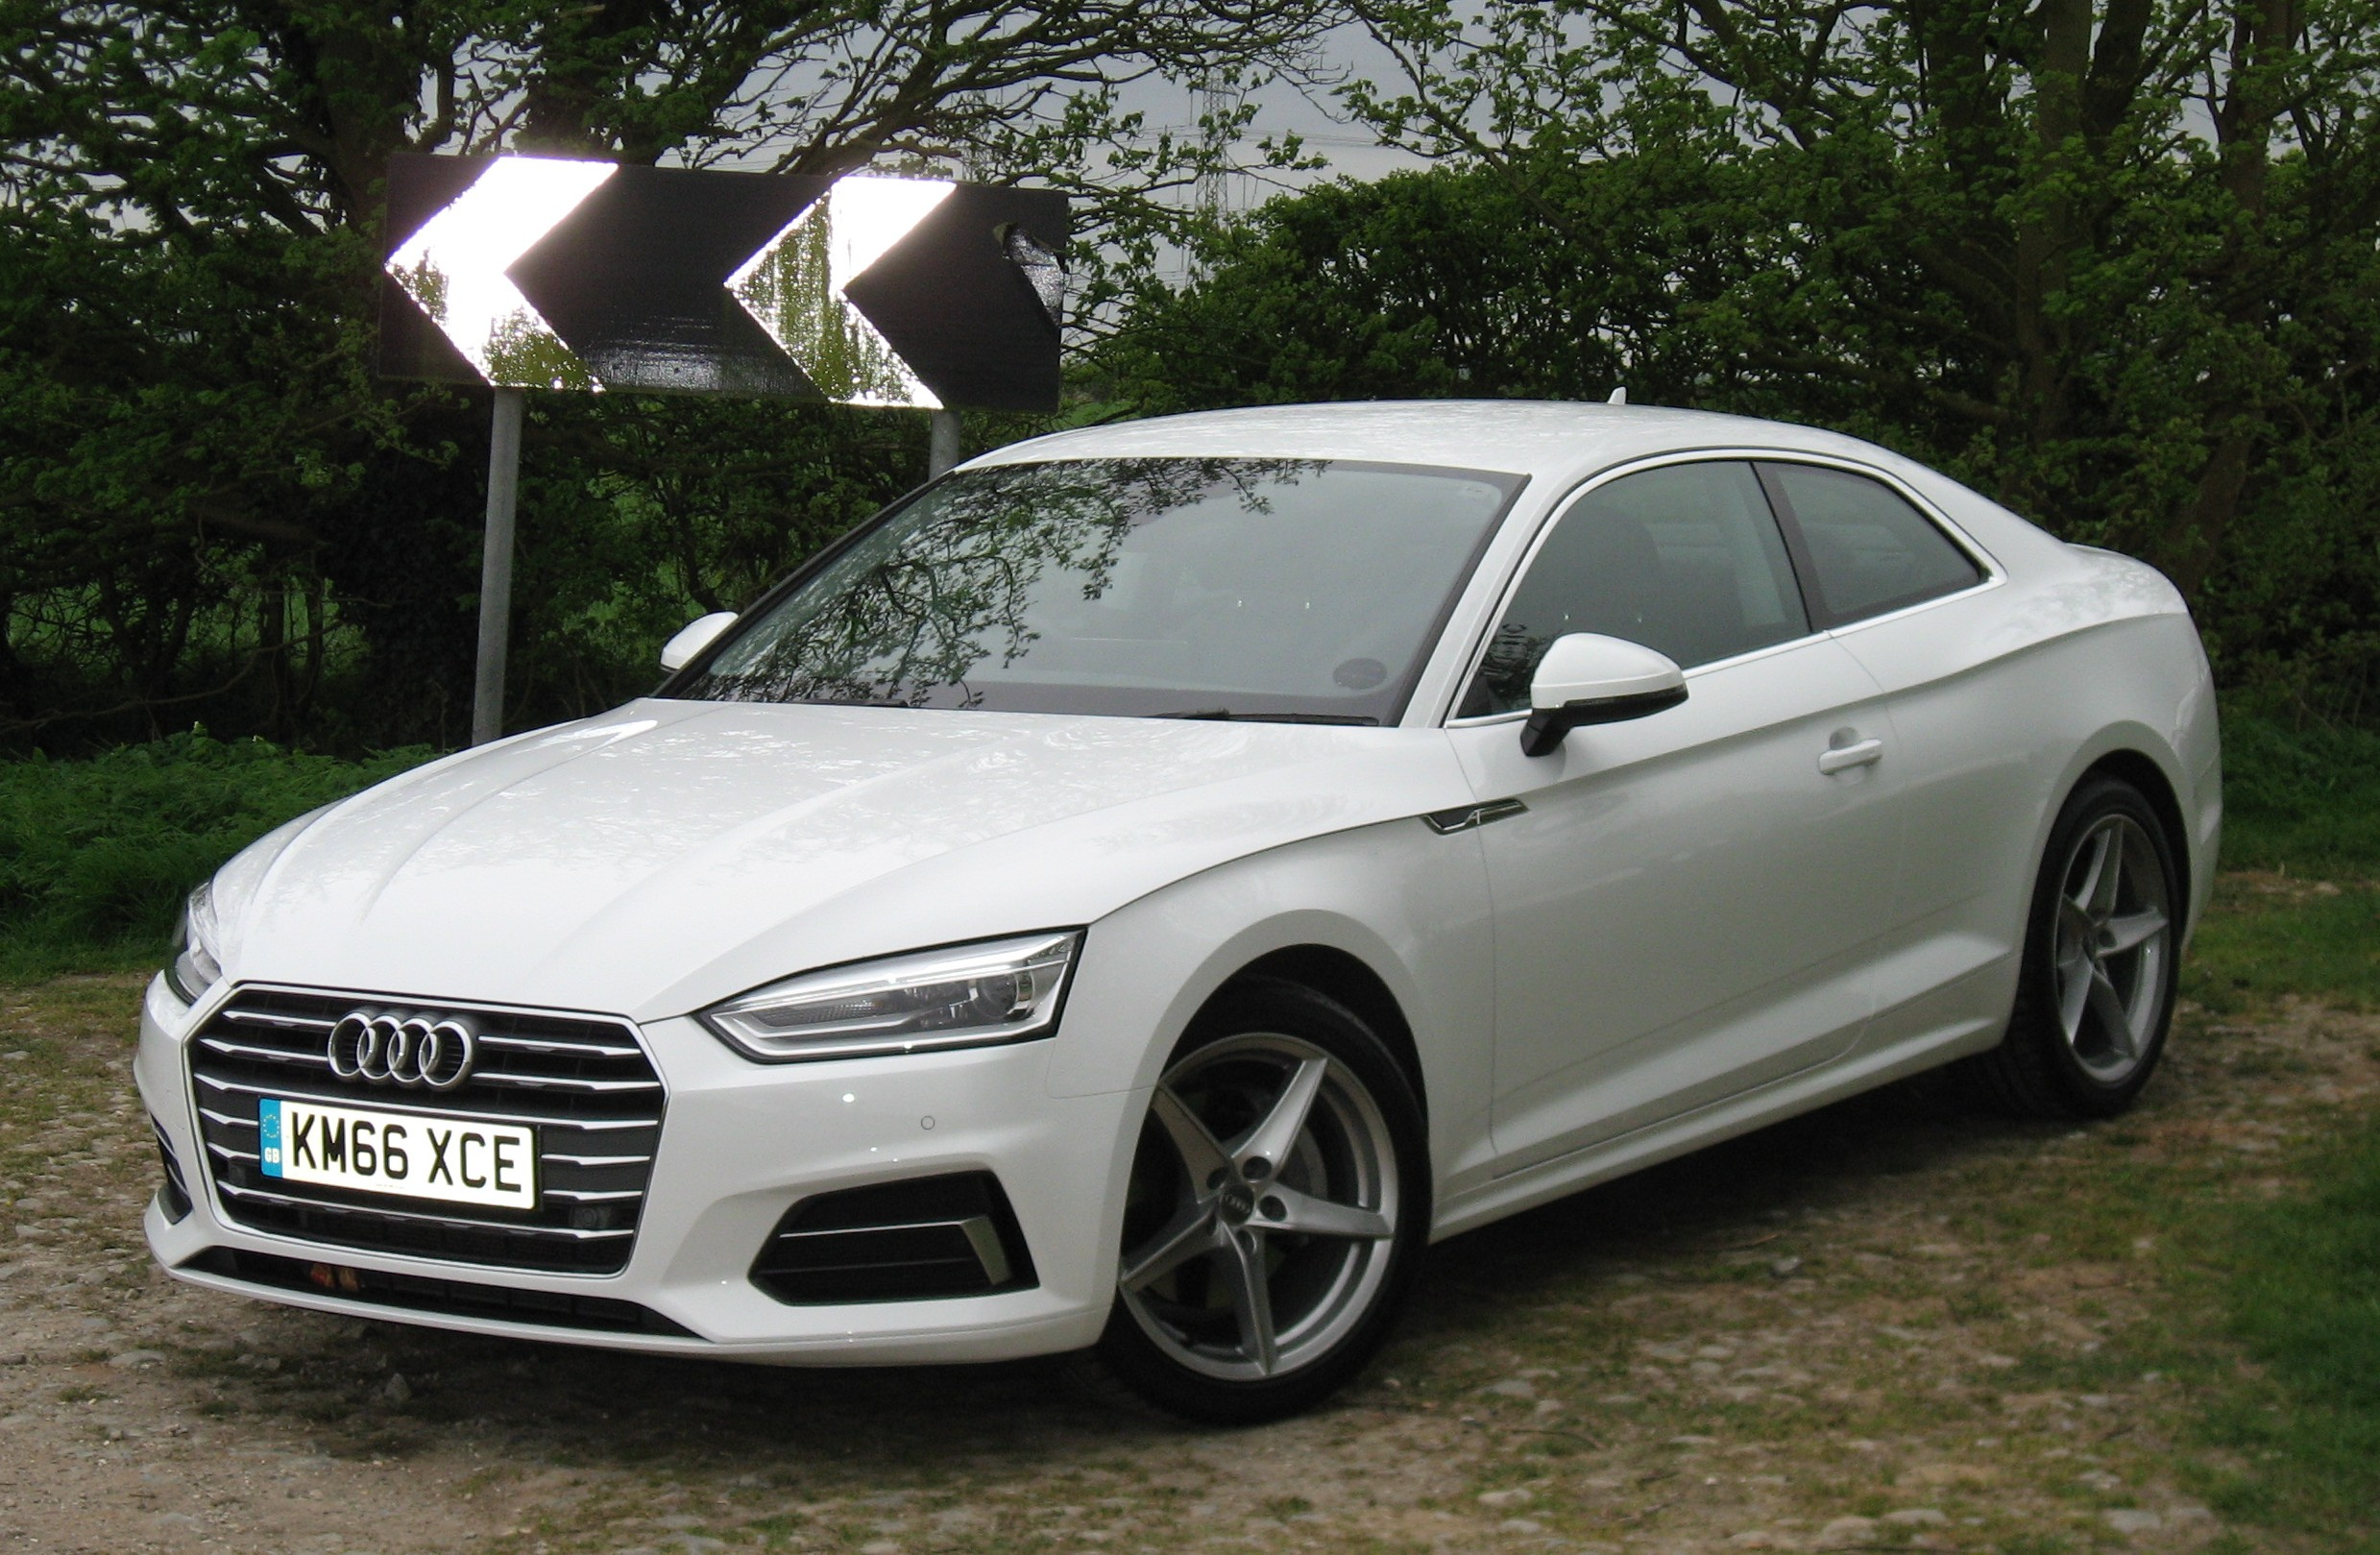 audi a5 2 0 tdi sport s tronic 190ps road test report and review. Black Bedroom Furniture Sets. Home Design Ideas